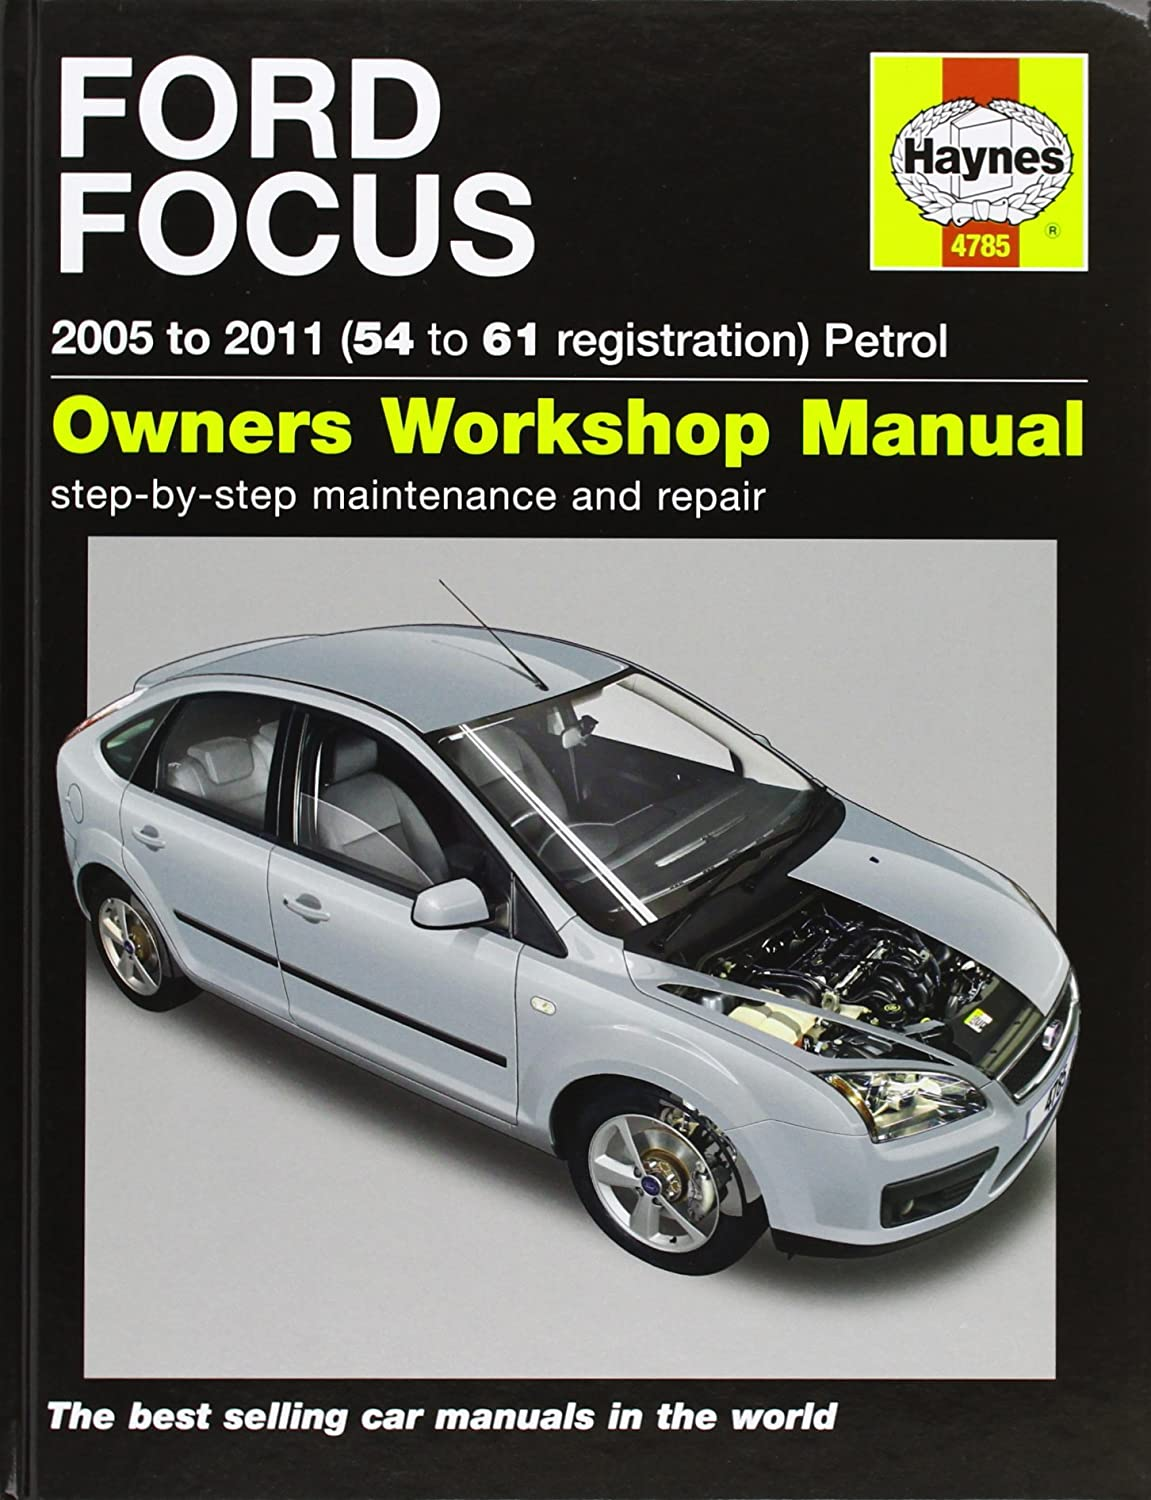 Ford focus petrol service and repair manual haynes service and repair manuals martynn randall amazon co uk car motorbike